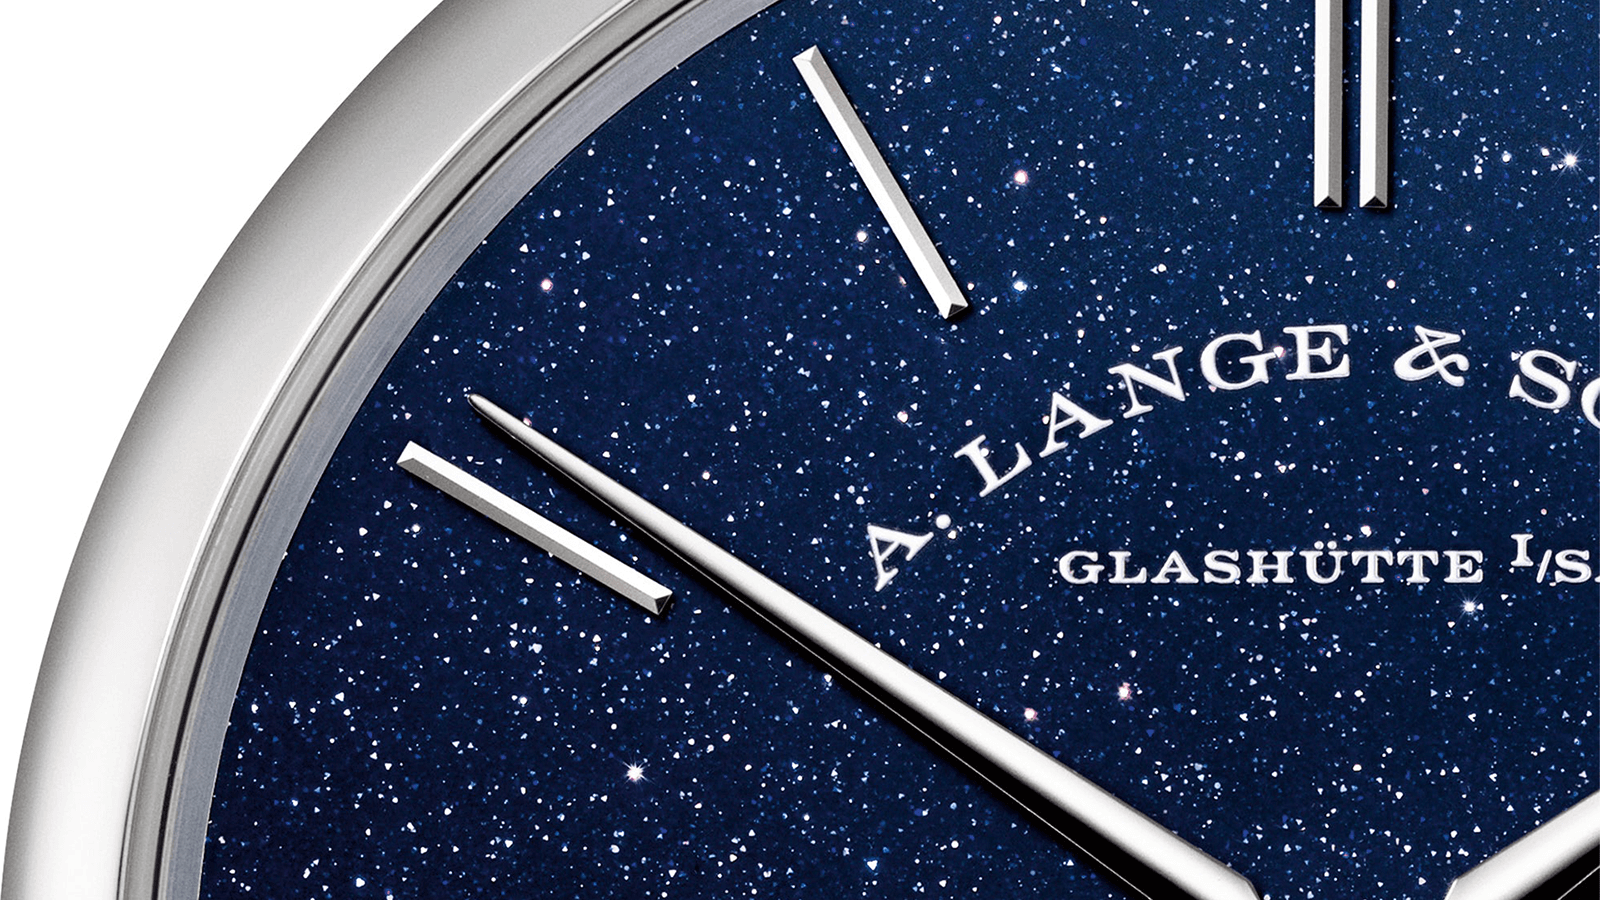 Liquor Run: LANGE SIHH 2018 Releases & Some More Champagne